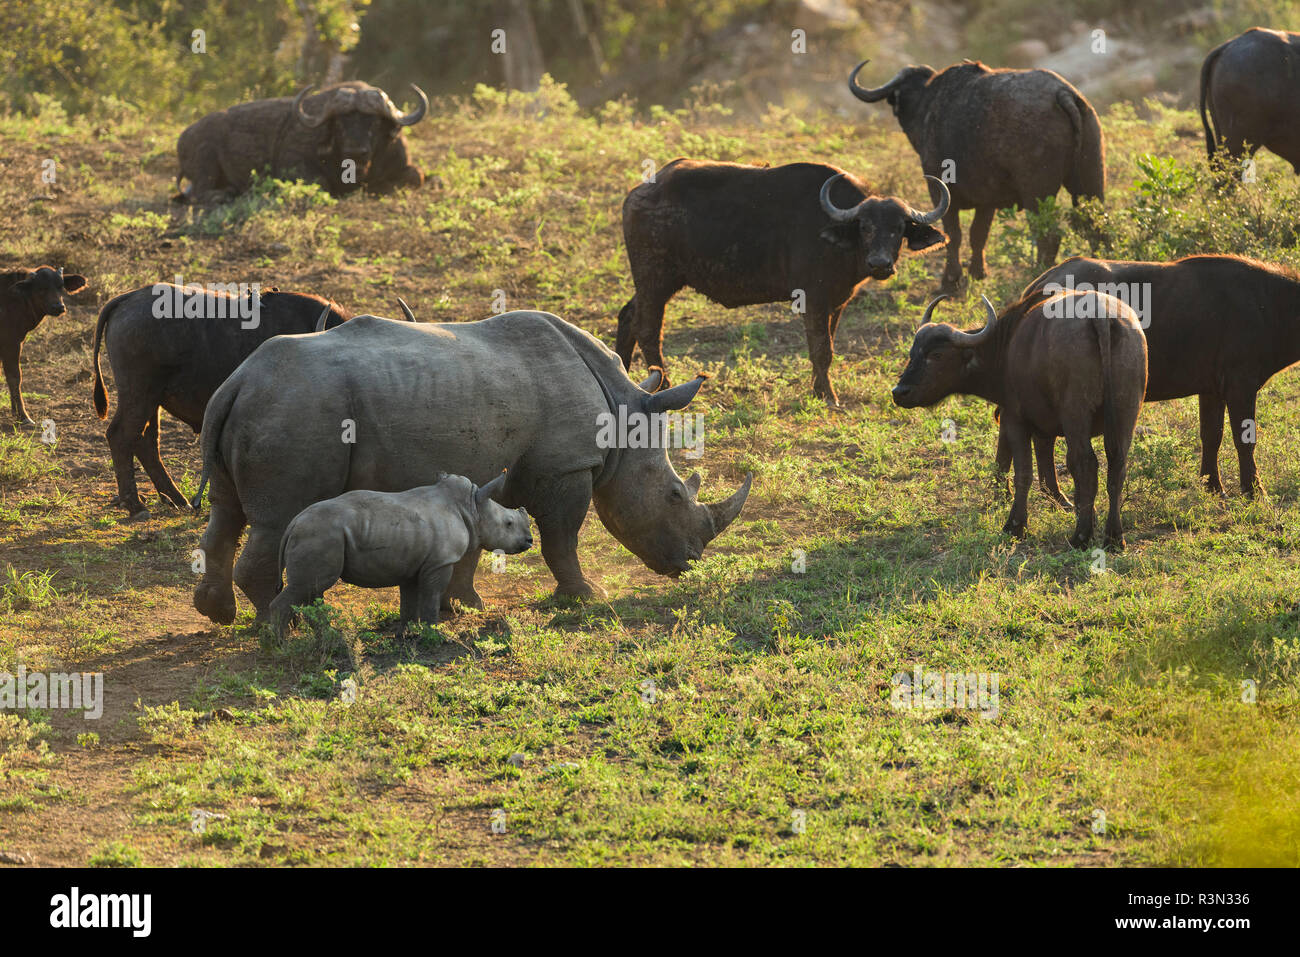 White Rhinoceros (Ceratotherium simum), young and his mother in front of the bufallo herd, Kruger national park, South Africa - Stock Image